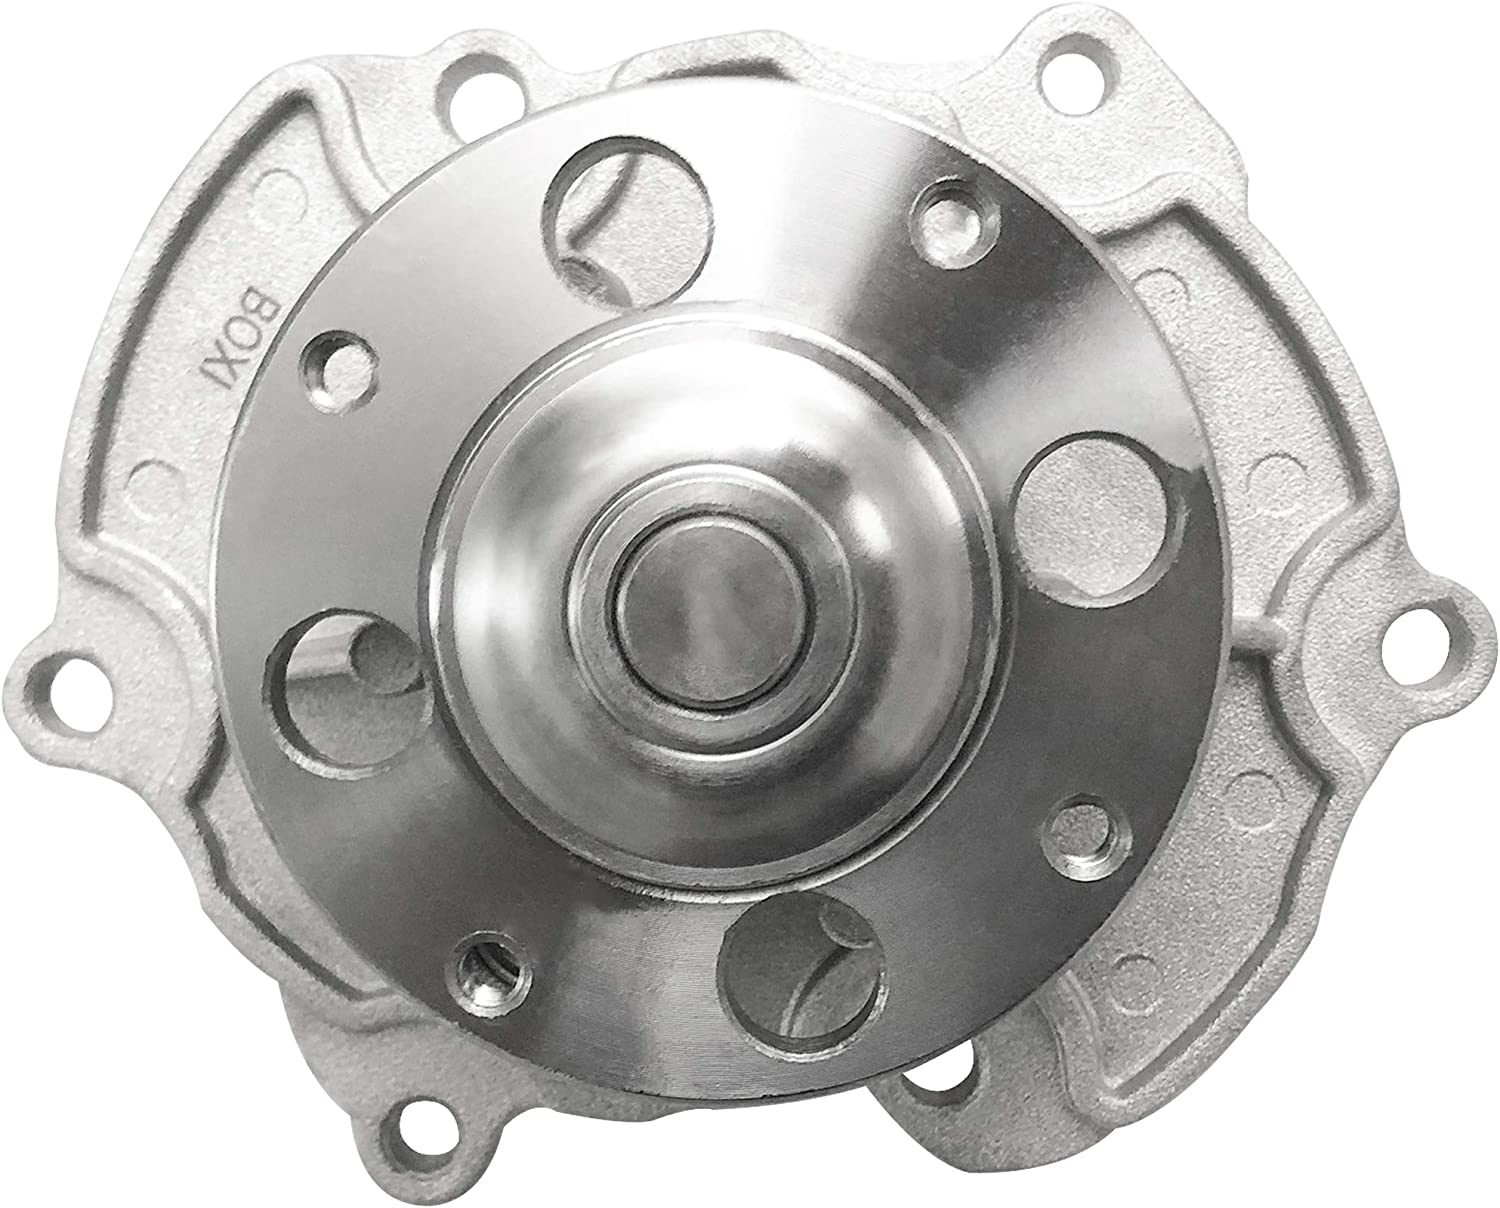 Replacement Parts BOXI Water Pump with Gasket For Cadillac Buick ...